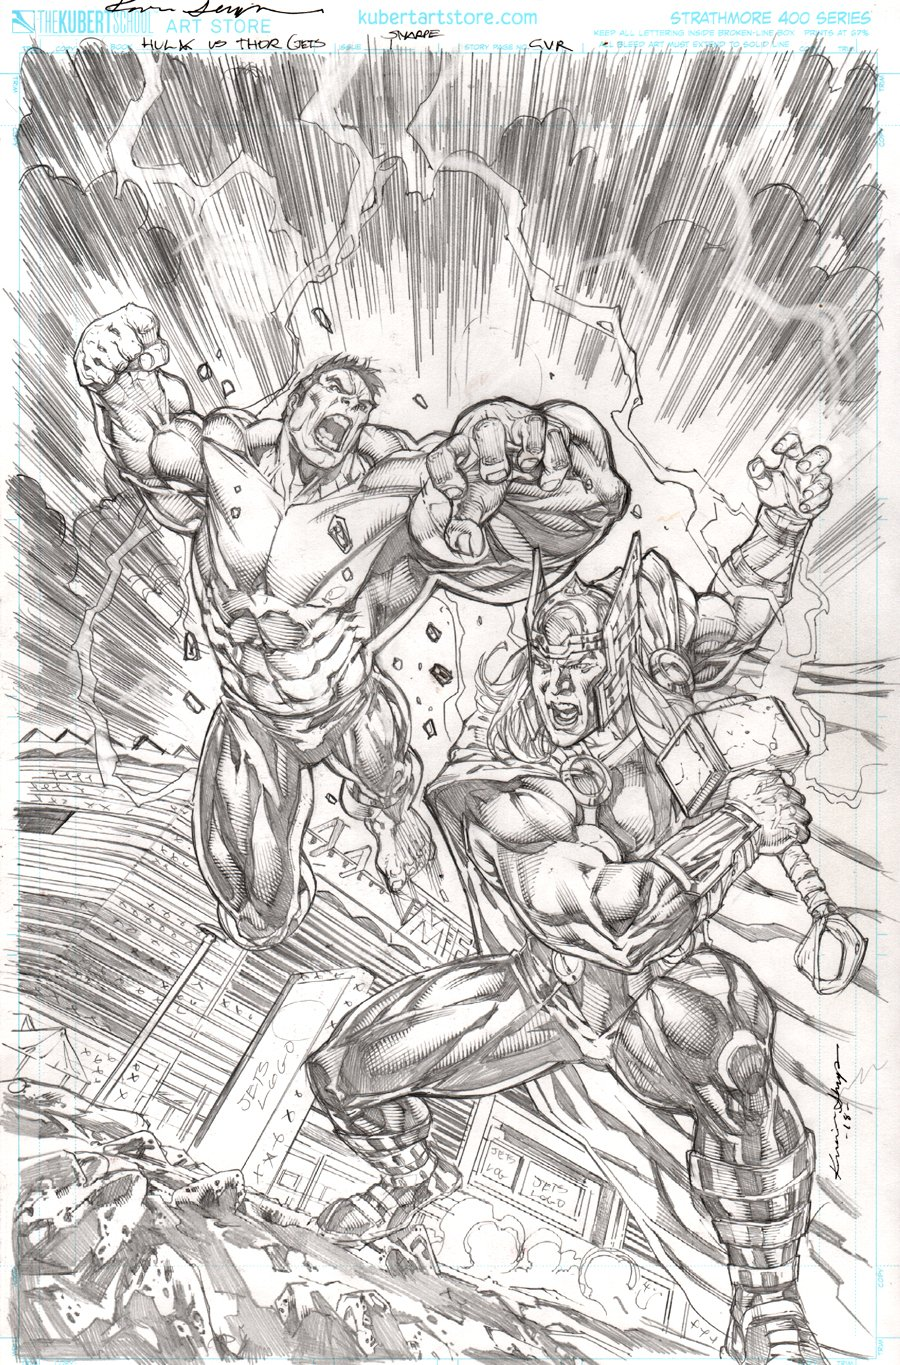 Incredible Hulk Vs. The Mighty Thor #1 Cover (2018)